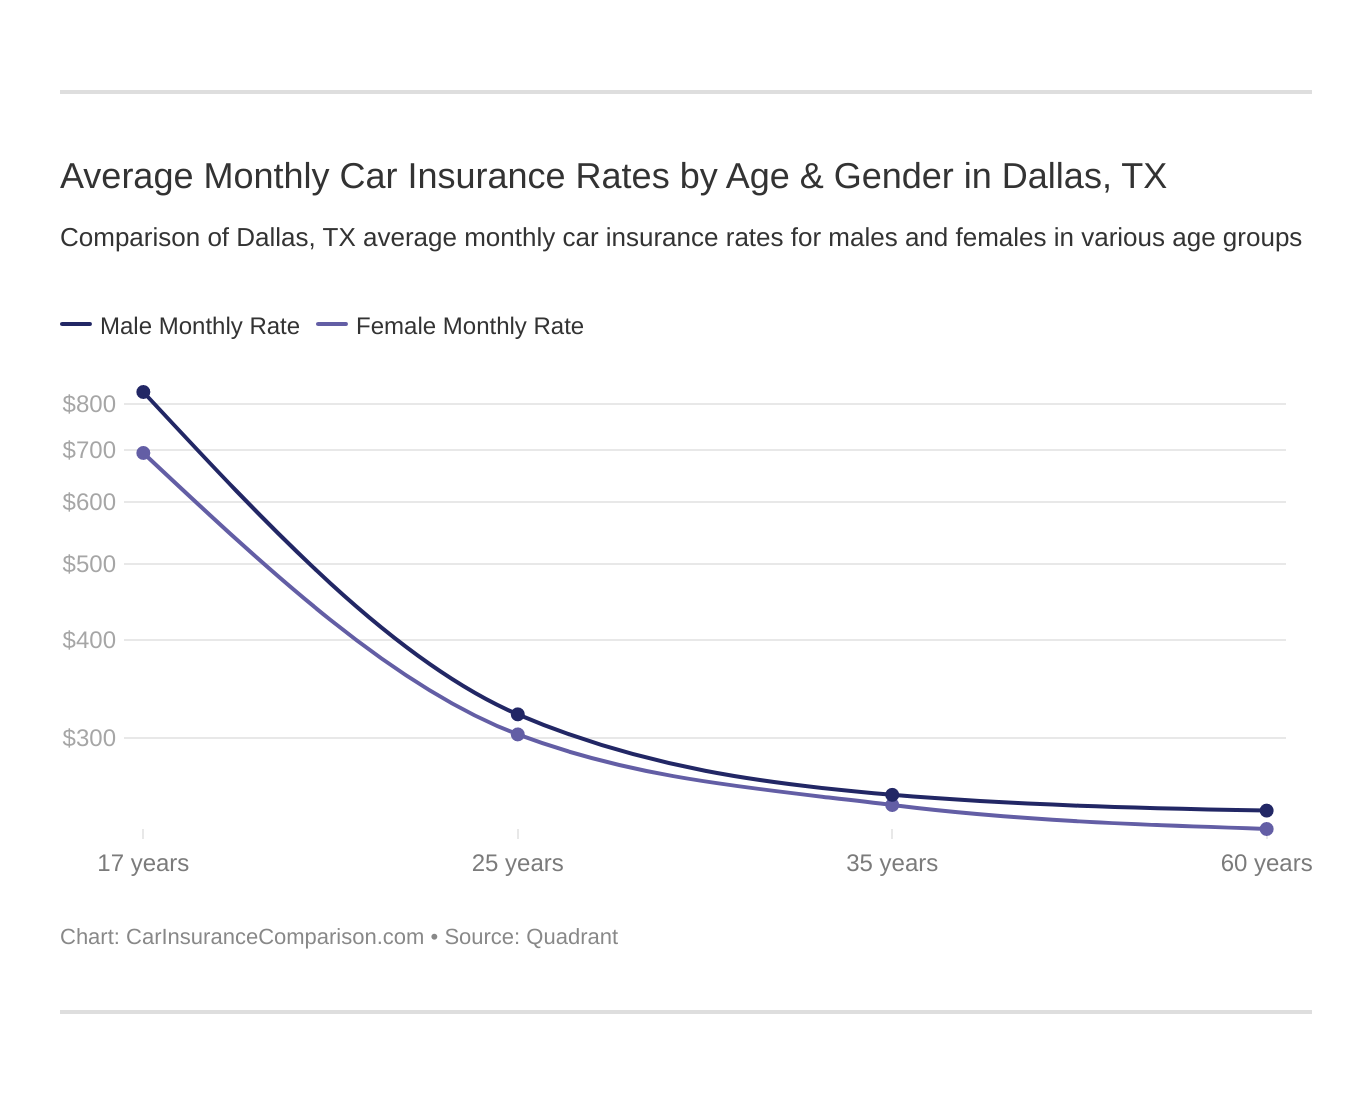 Average Monthly Car Insurance Rates by Age & Gender in Dallas, TX